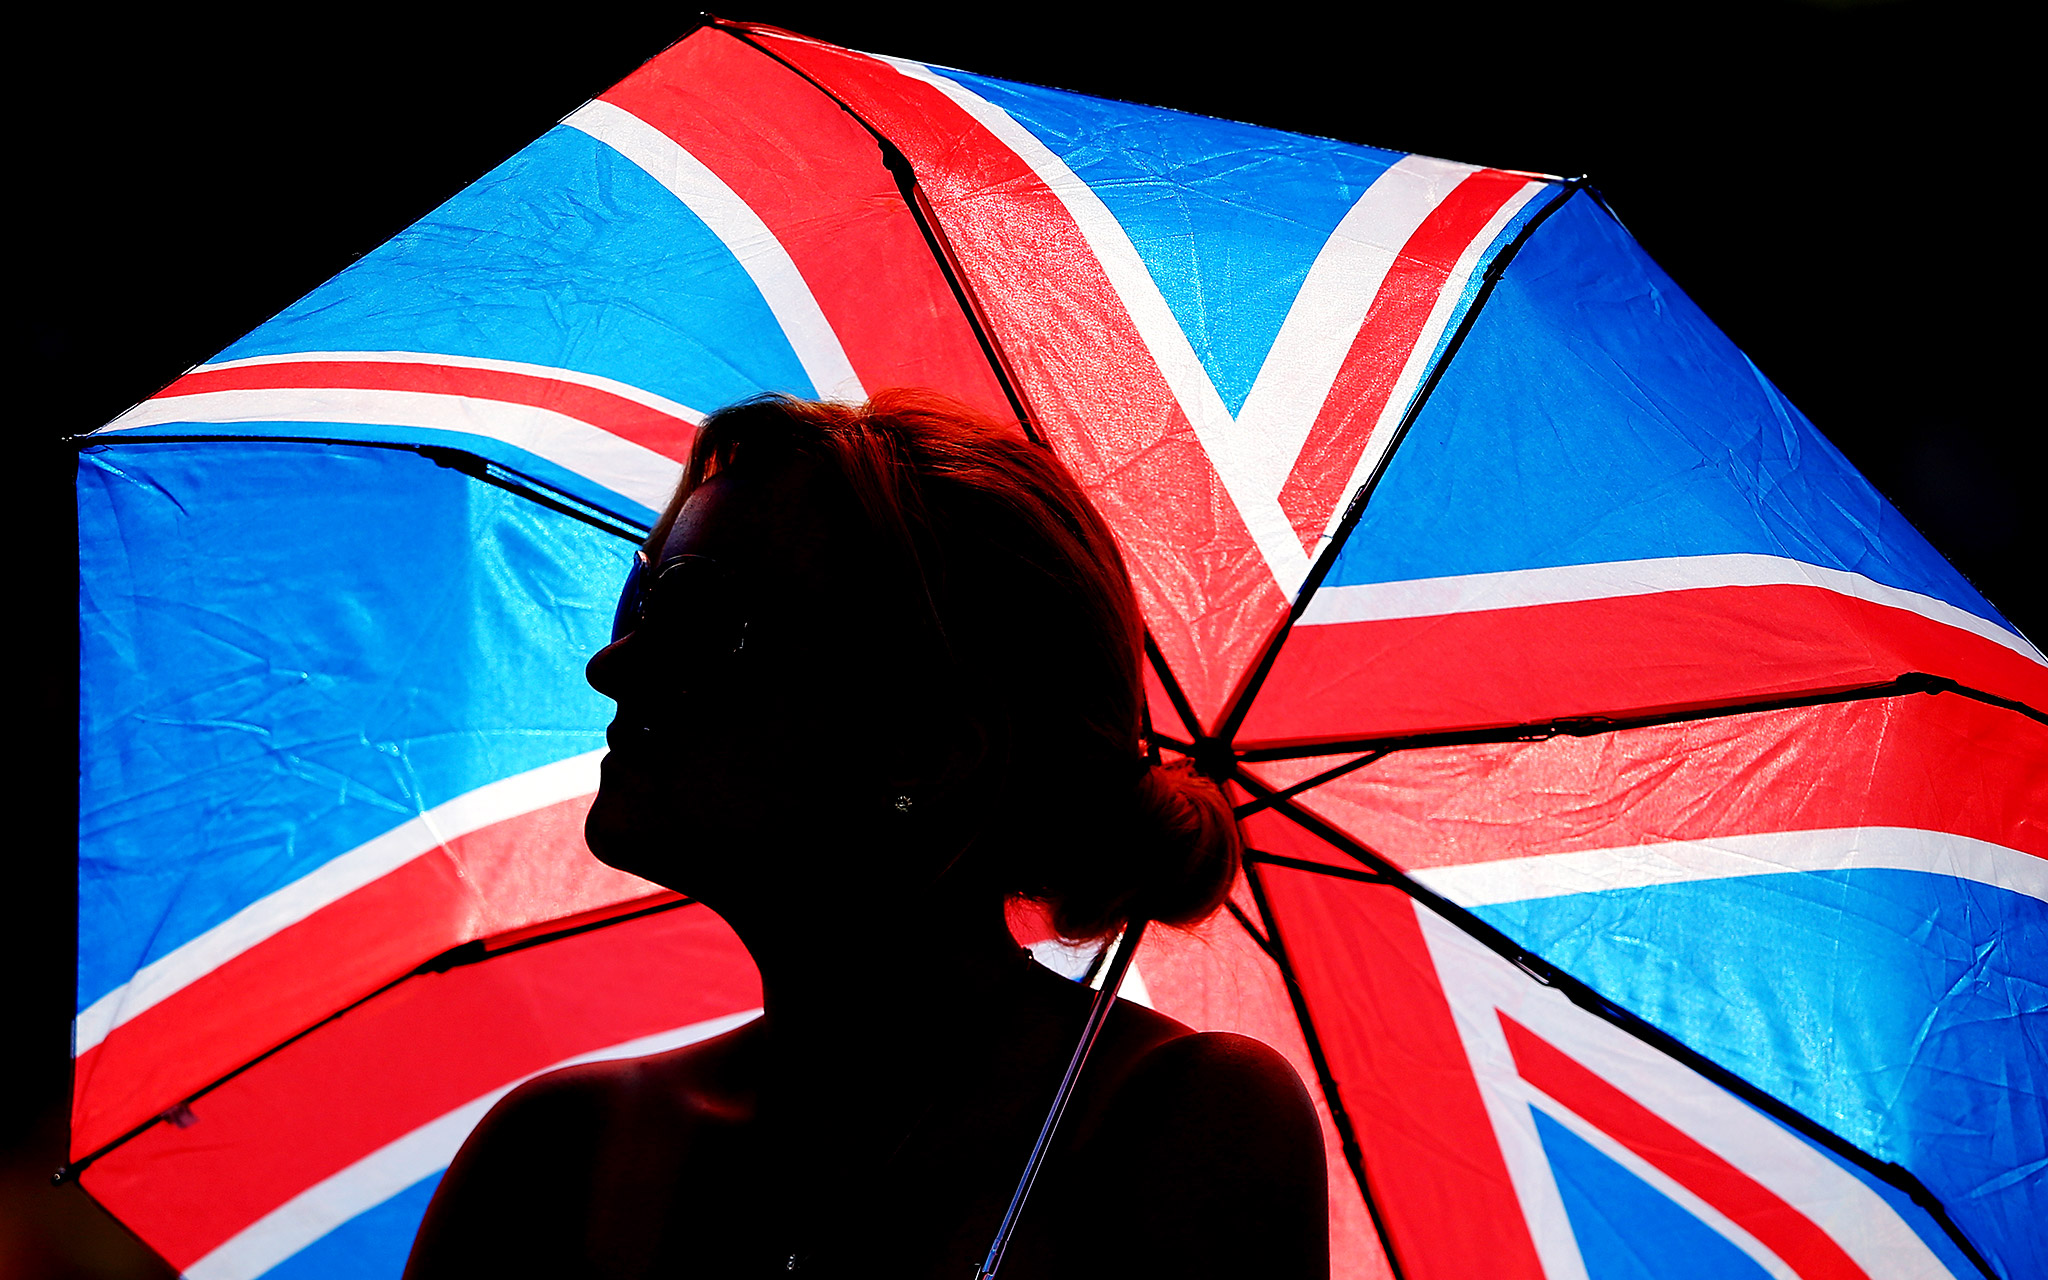 A fan gets shelters from the sun under a union jack umbrella on Day 9 of Wimbledon.